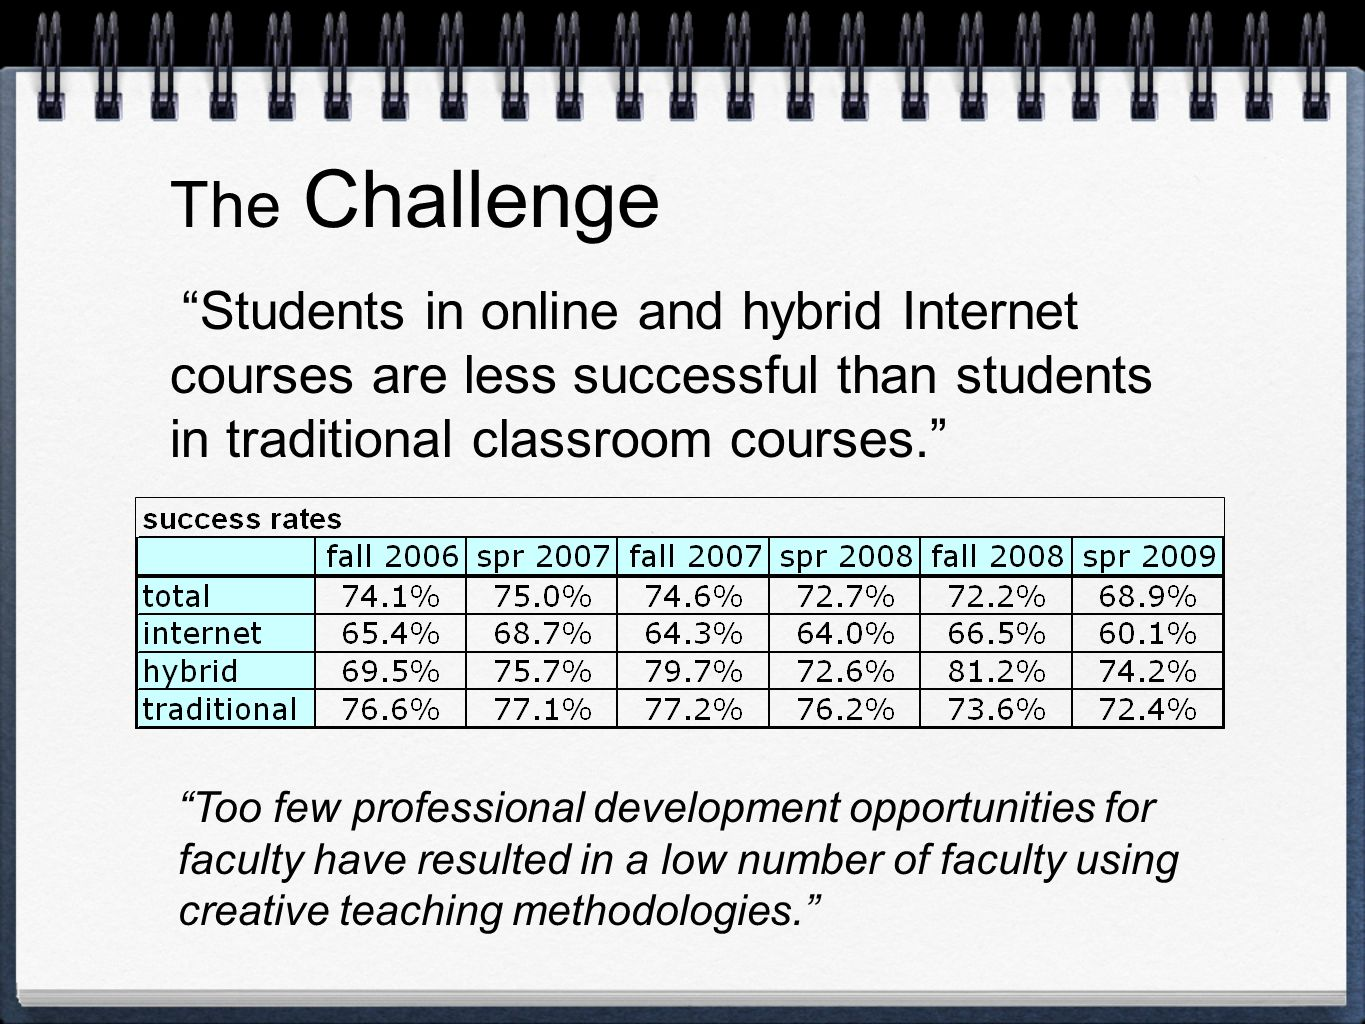 The Challenge Students in online and hybrid Internet courses are less successful than students in traditional classroom courses. Too few professional